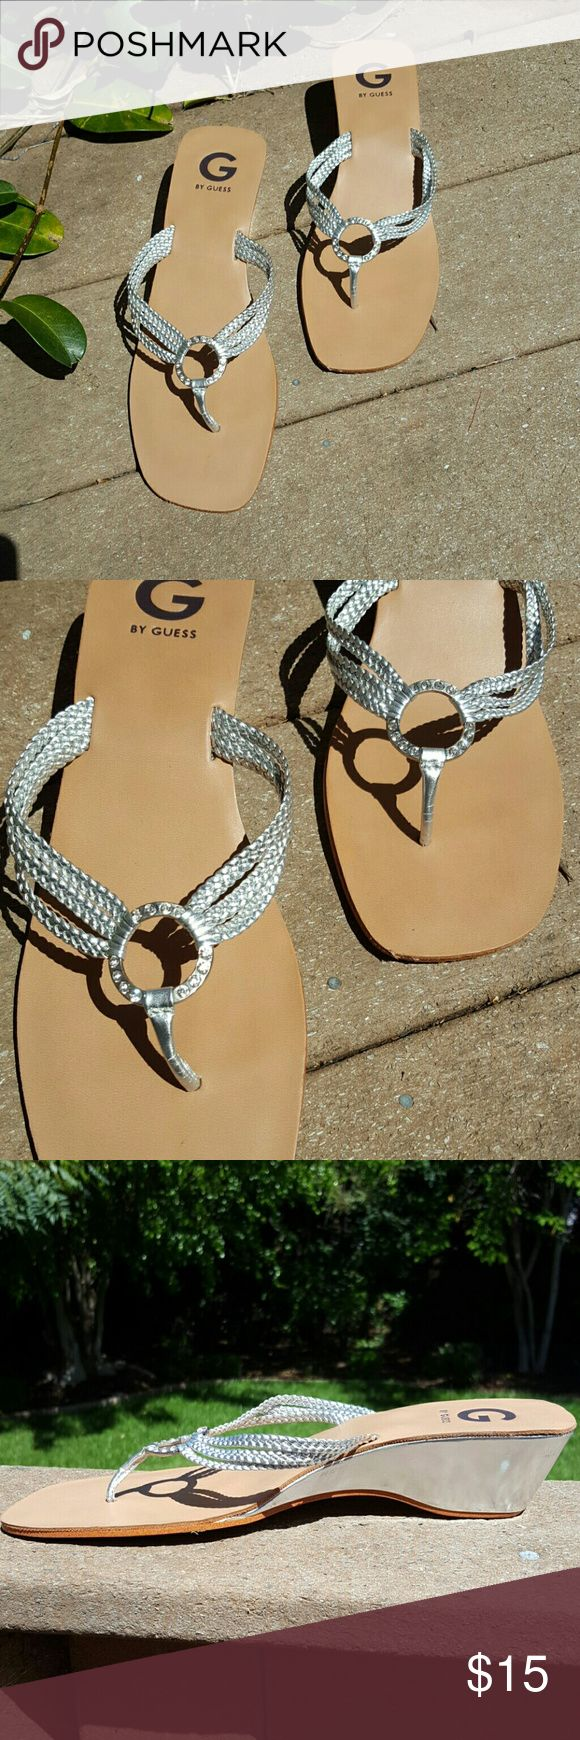 G by Guess Silver Sandals Gorgeous silver sandals by Guess. Sandals have 3 silver straps on each size of the center circle with embellishments. All embellishments are still attached. In great condition and only worn twice.   Wedge on sandals is 2 inches.   Comes from a smoke-free home. G by Guess Shoes